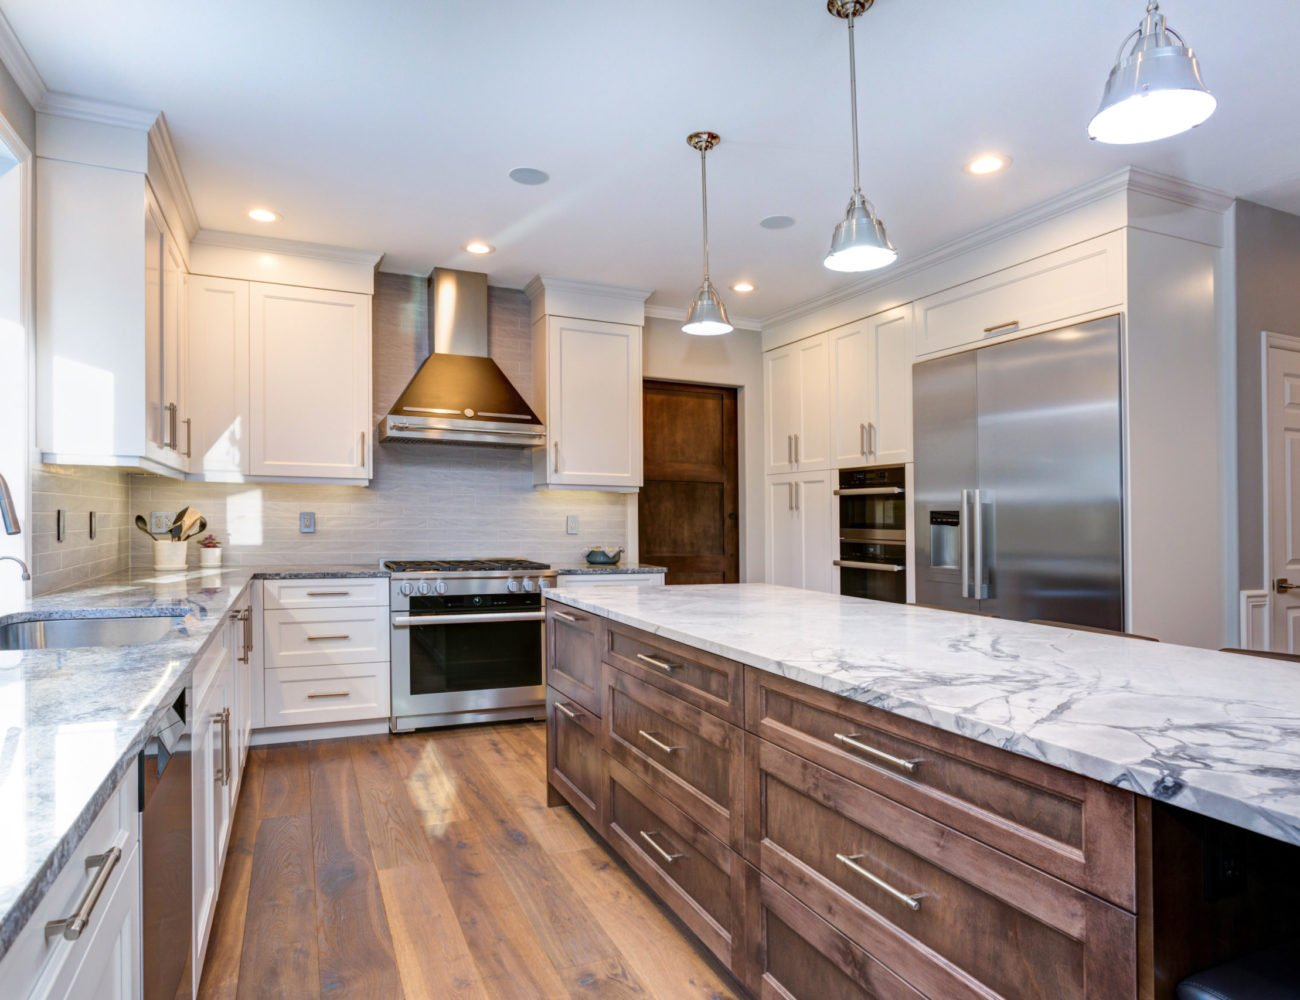 Luxury Kitchen Cabinets in Northbrook at Fusion Home Corp.